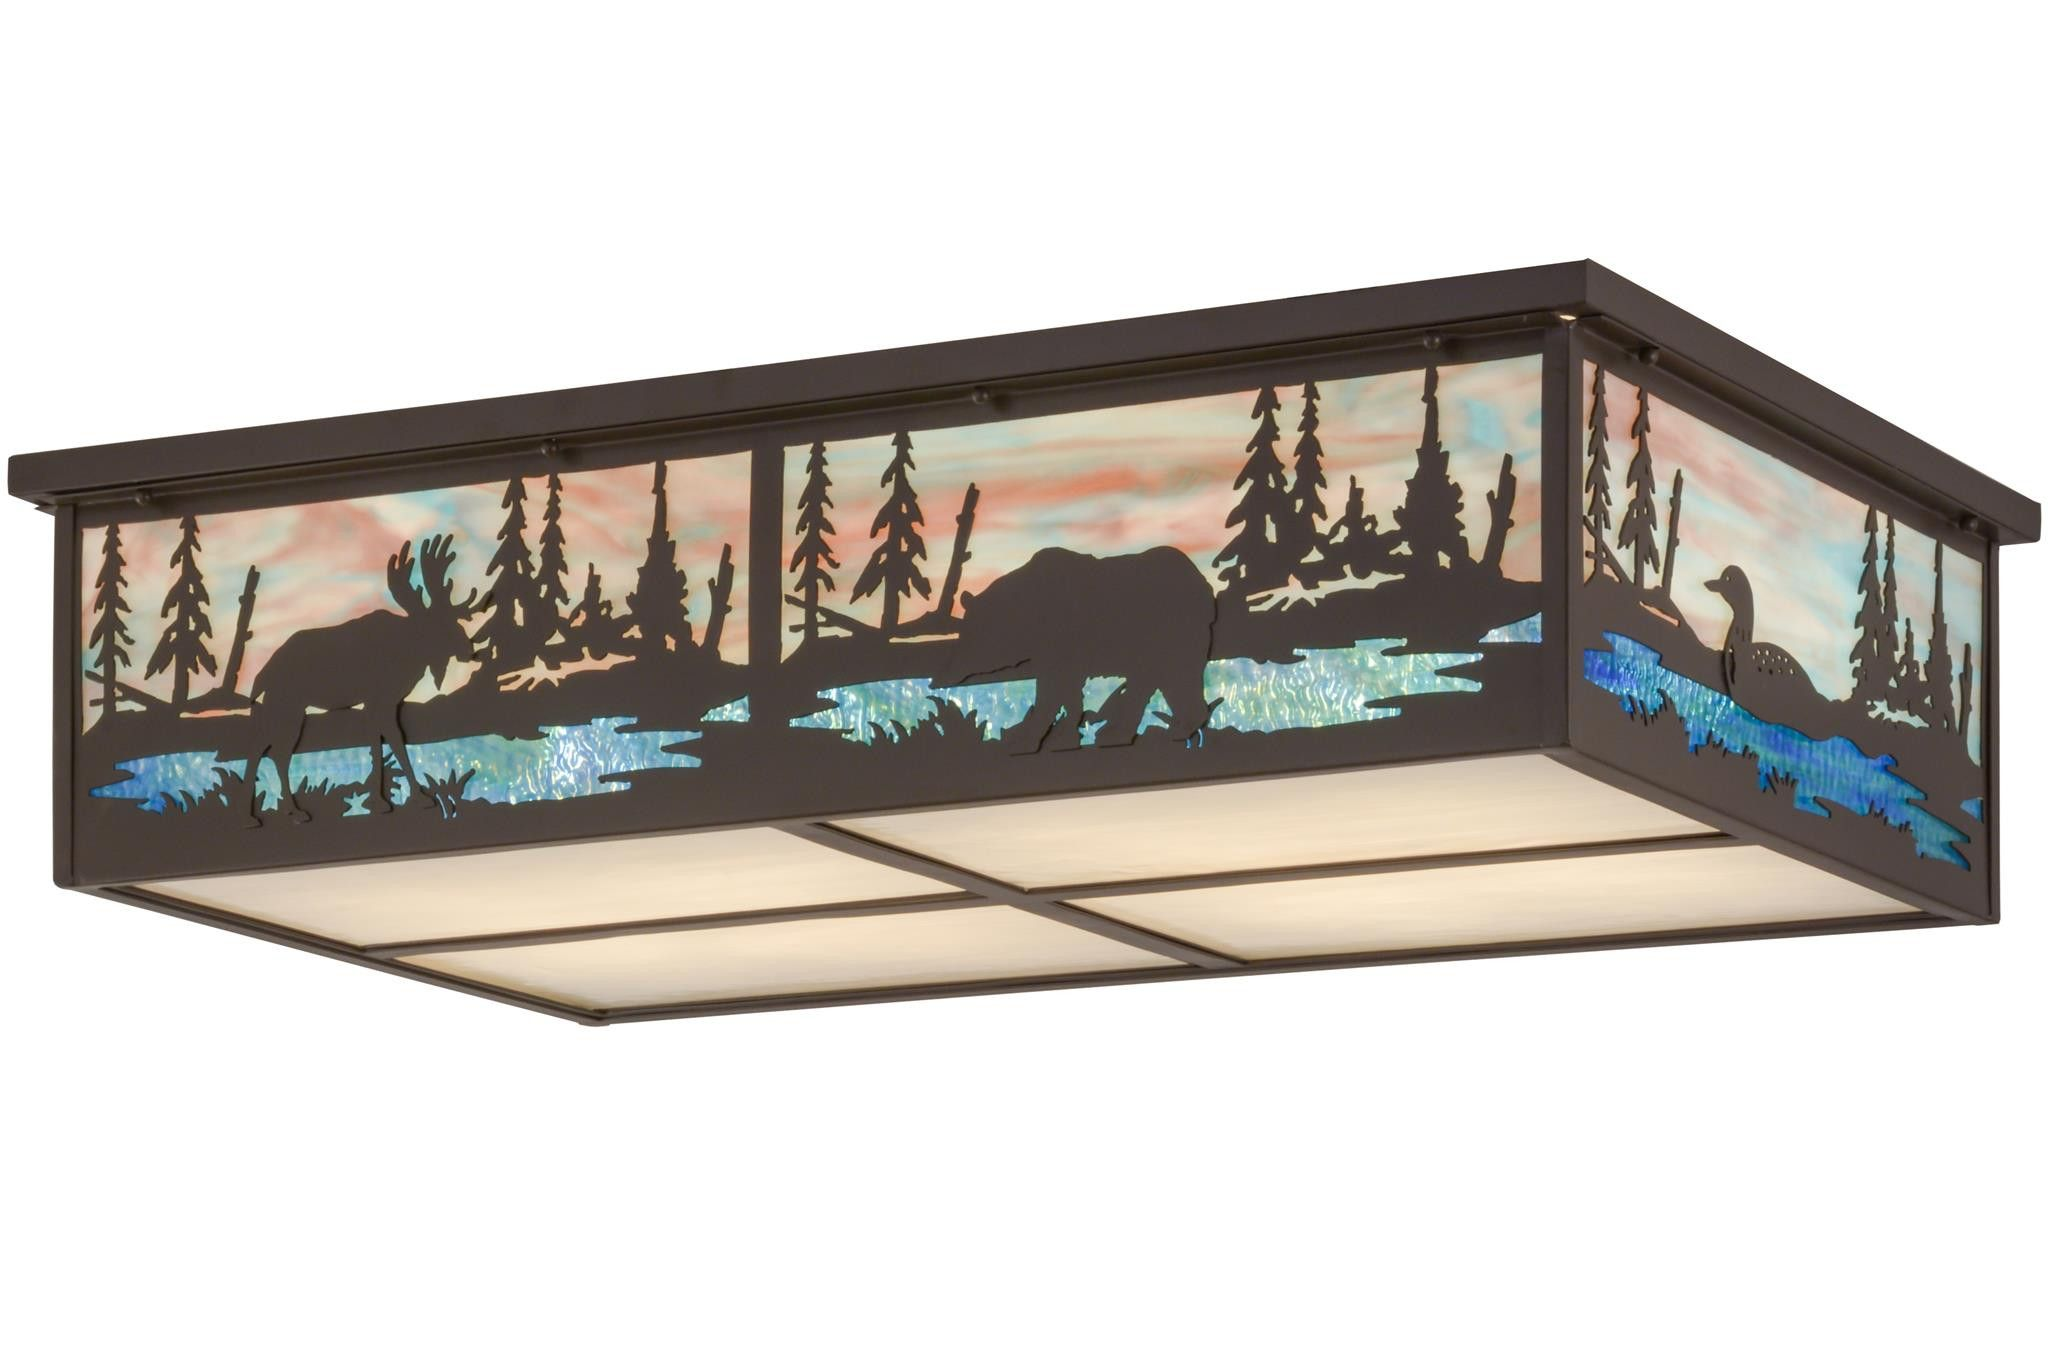 36 Inch L Wildlife At Pine Lake Flushmount - 36 Inch L Wildlife At Pine Lake flush mountInvite the Great Outdoors inside your home or business with this stunning lighting design, which features themajestic Elk and Bear meandering around a Crystal Blue woodland lake with a beautiful sky at dusk in the background. This fixture features White? and Blue art glass with decorative accents and hardware in aTimeless Bronze finish. Crafted by the hands of Meyda artisans at the foothills of the…